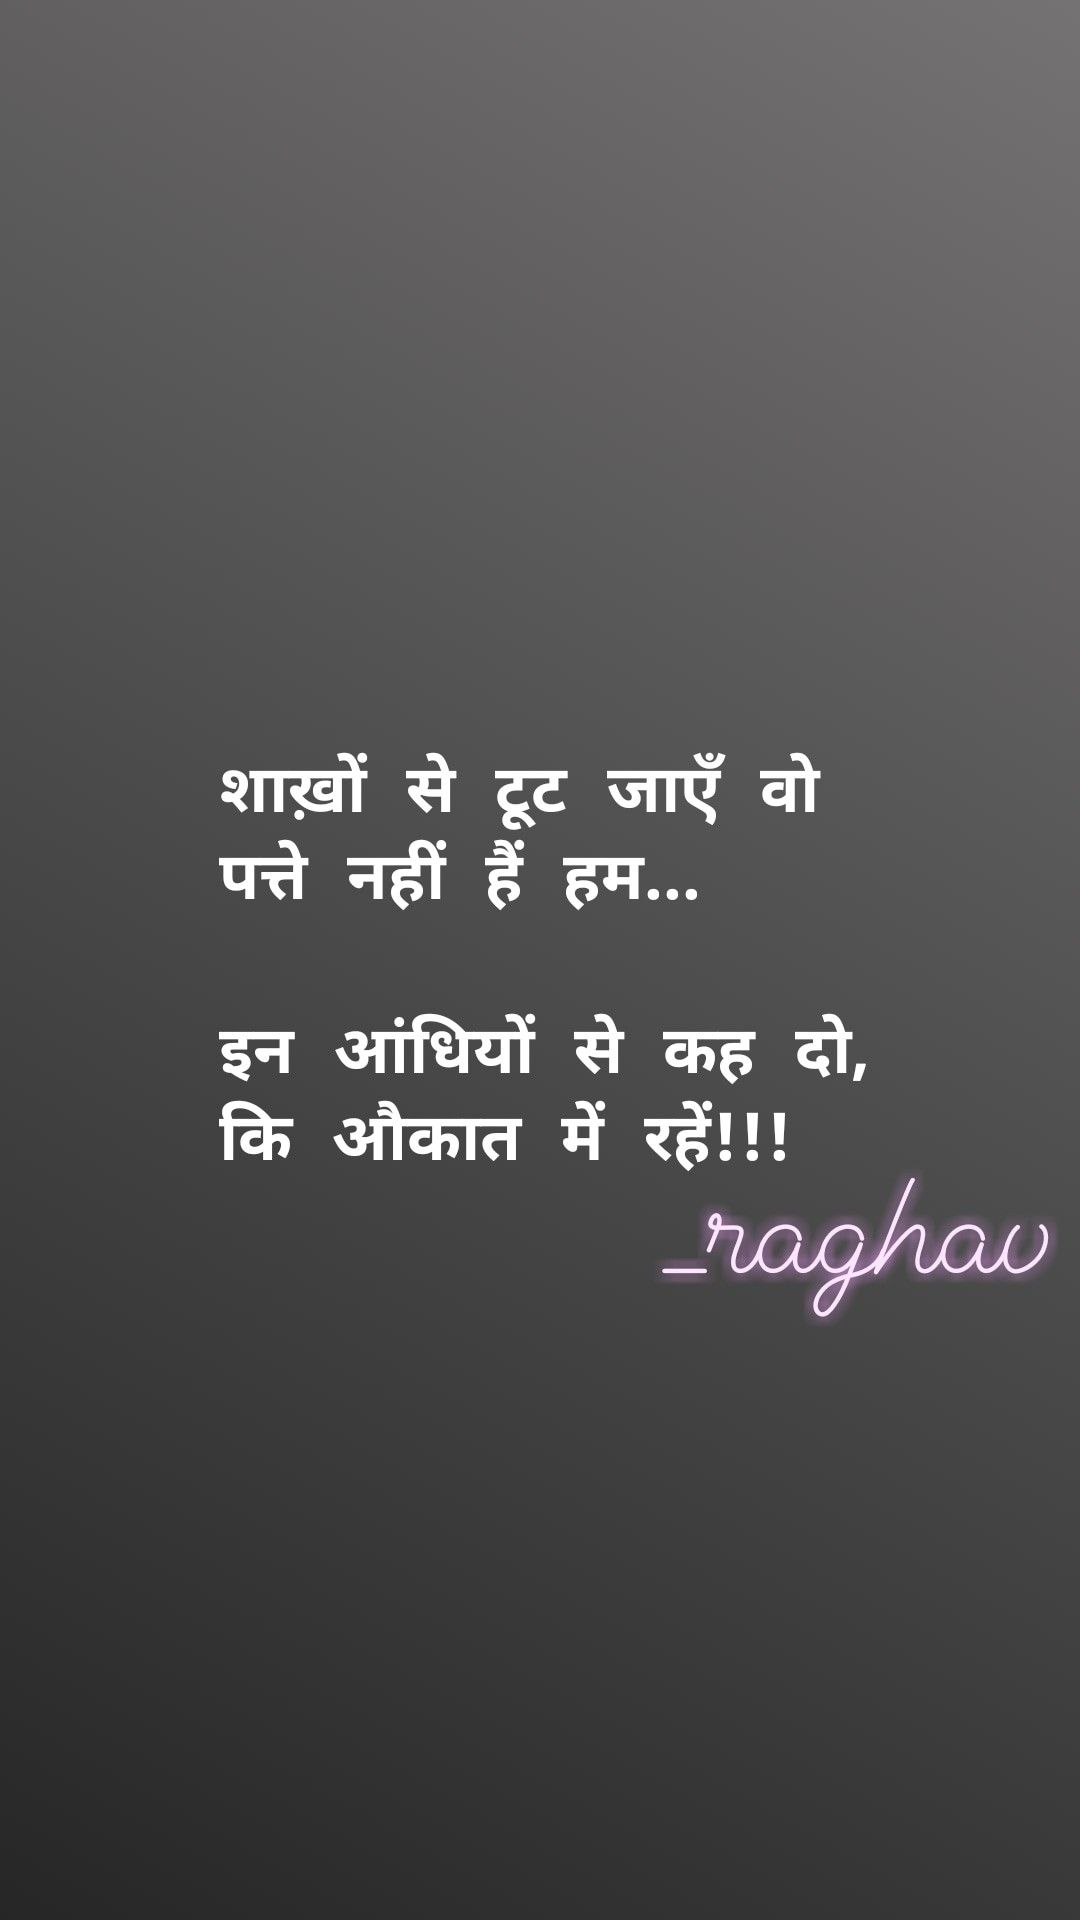 Pin By Raghav Rachit On My Writing Pinterest Quotes Poetry And